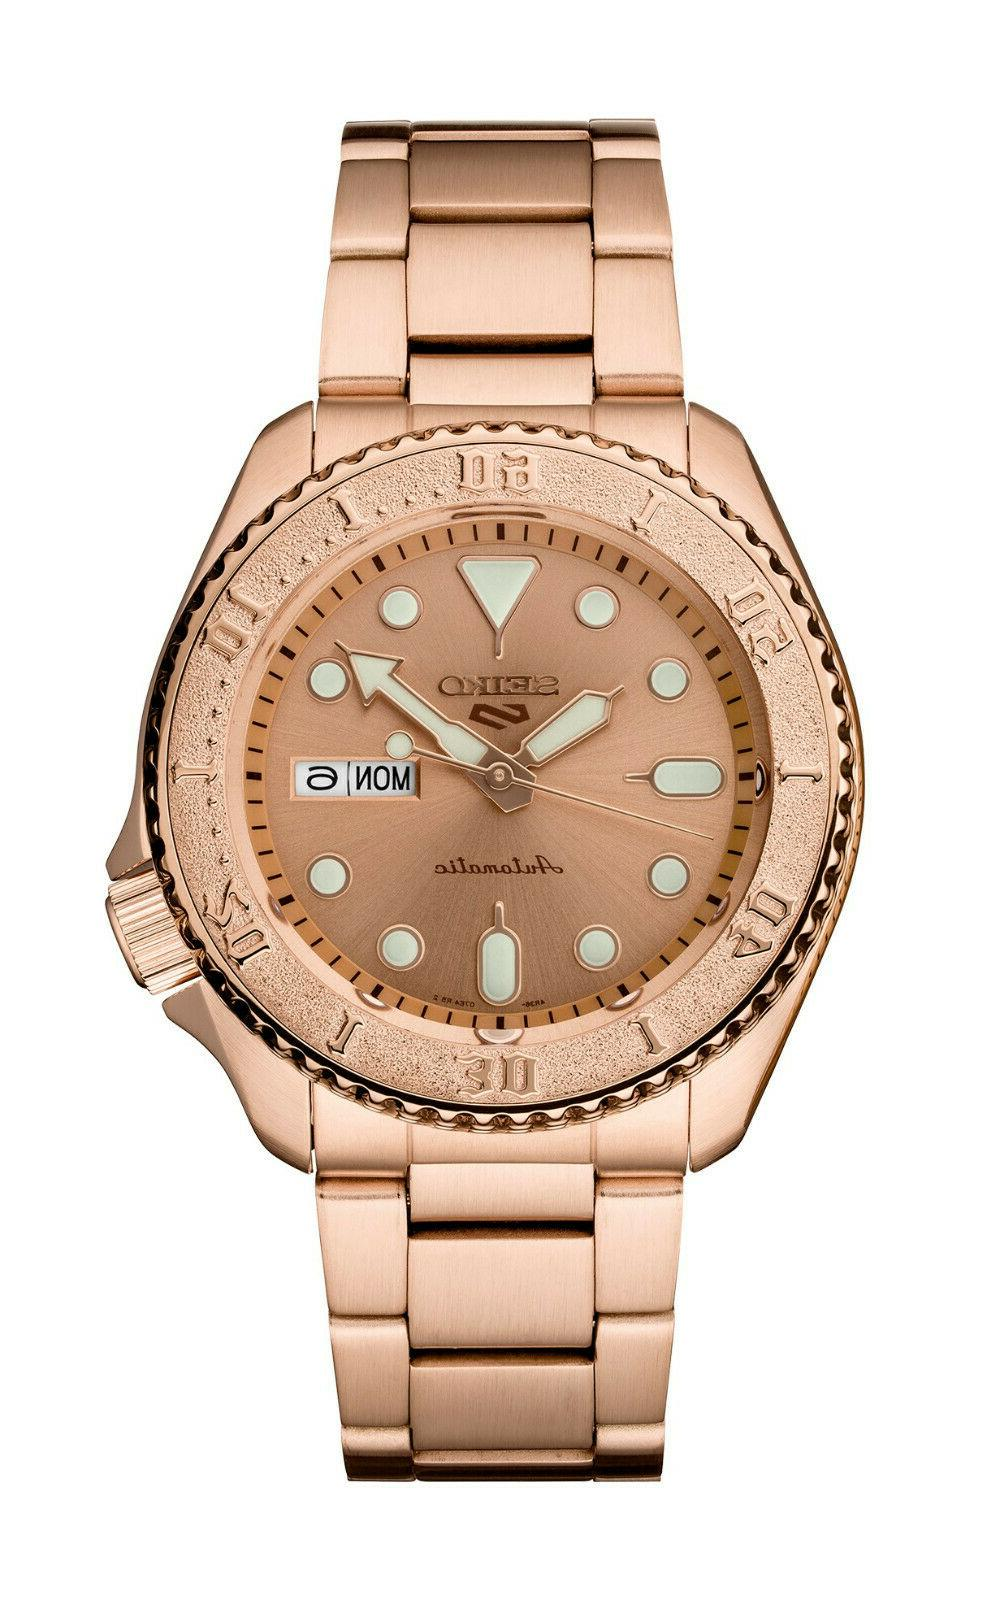 new 5 automatic rose gold tone steel